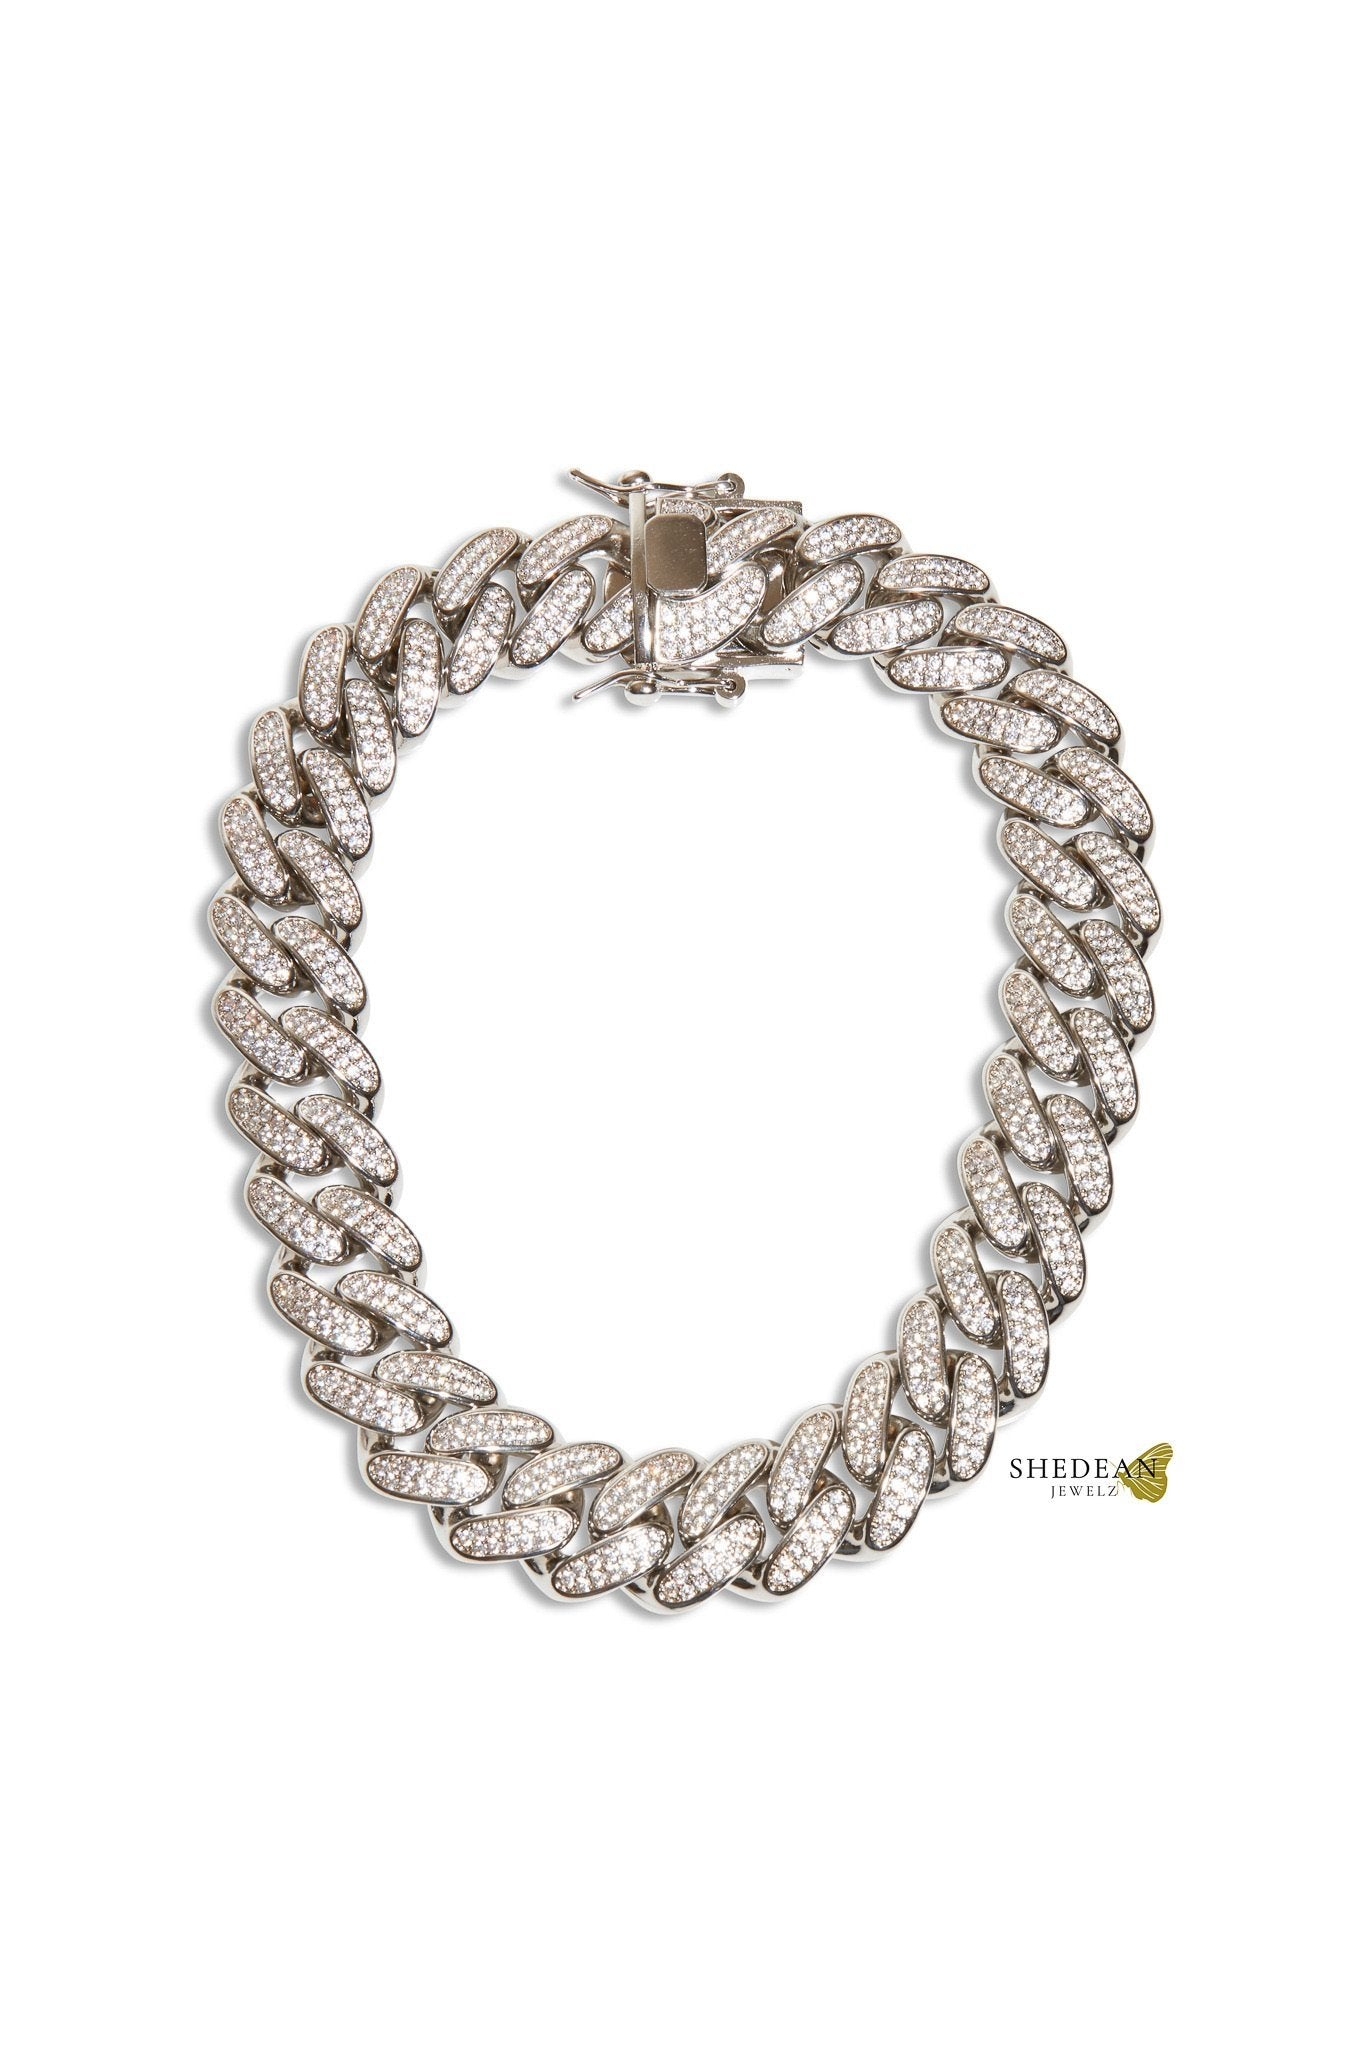 Chains - Shedean Jewelz